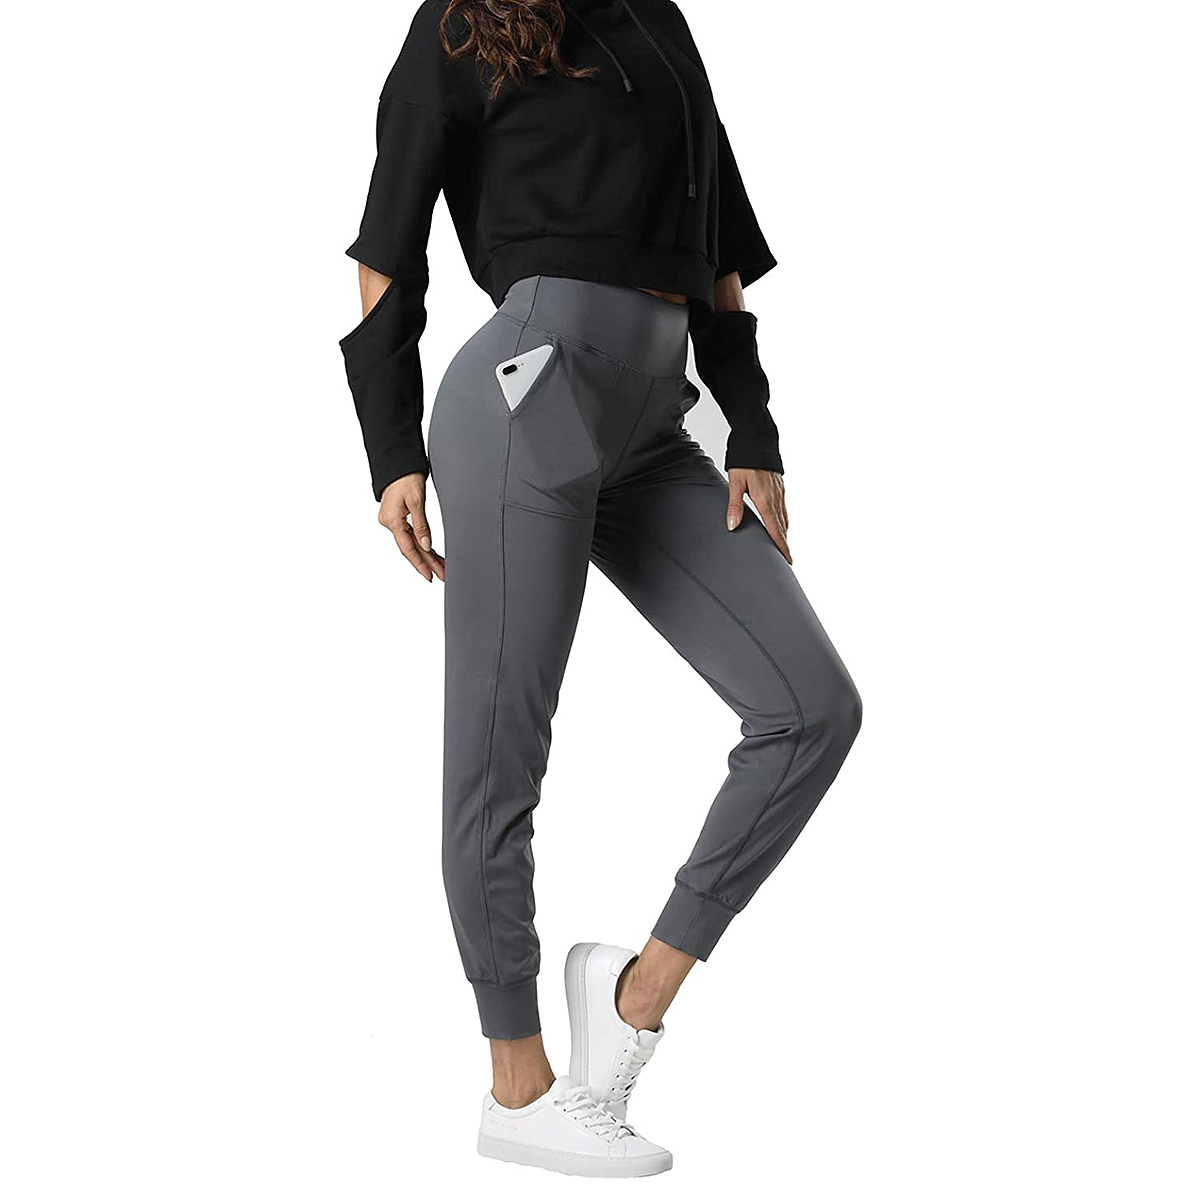 The Gym People Joggers